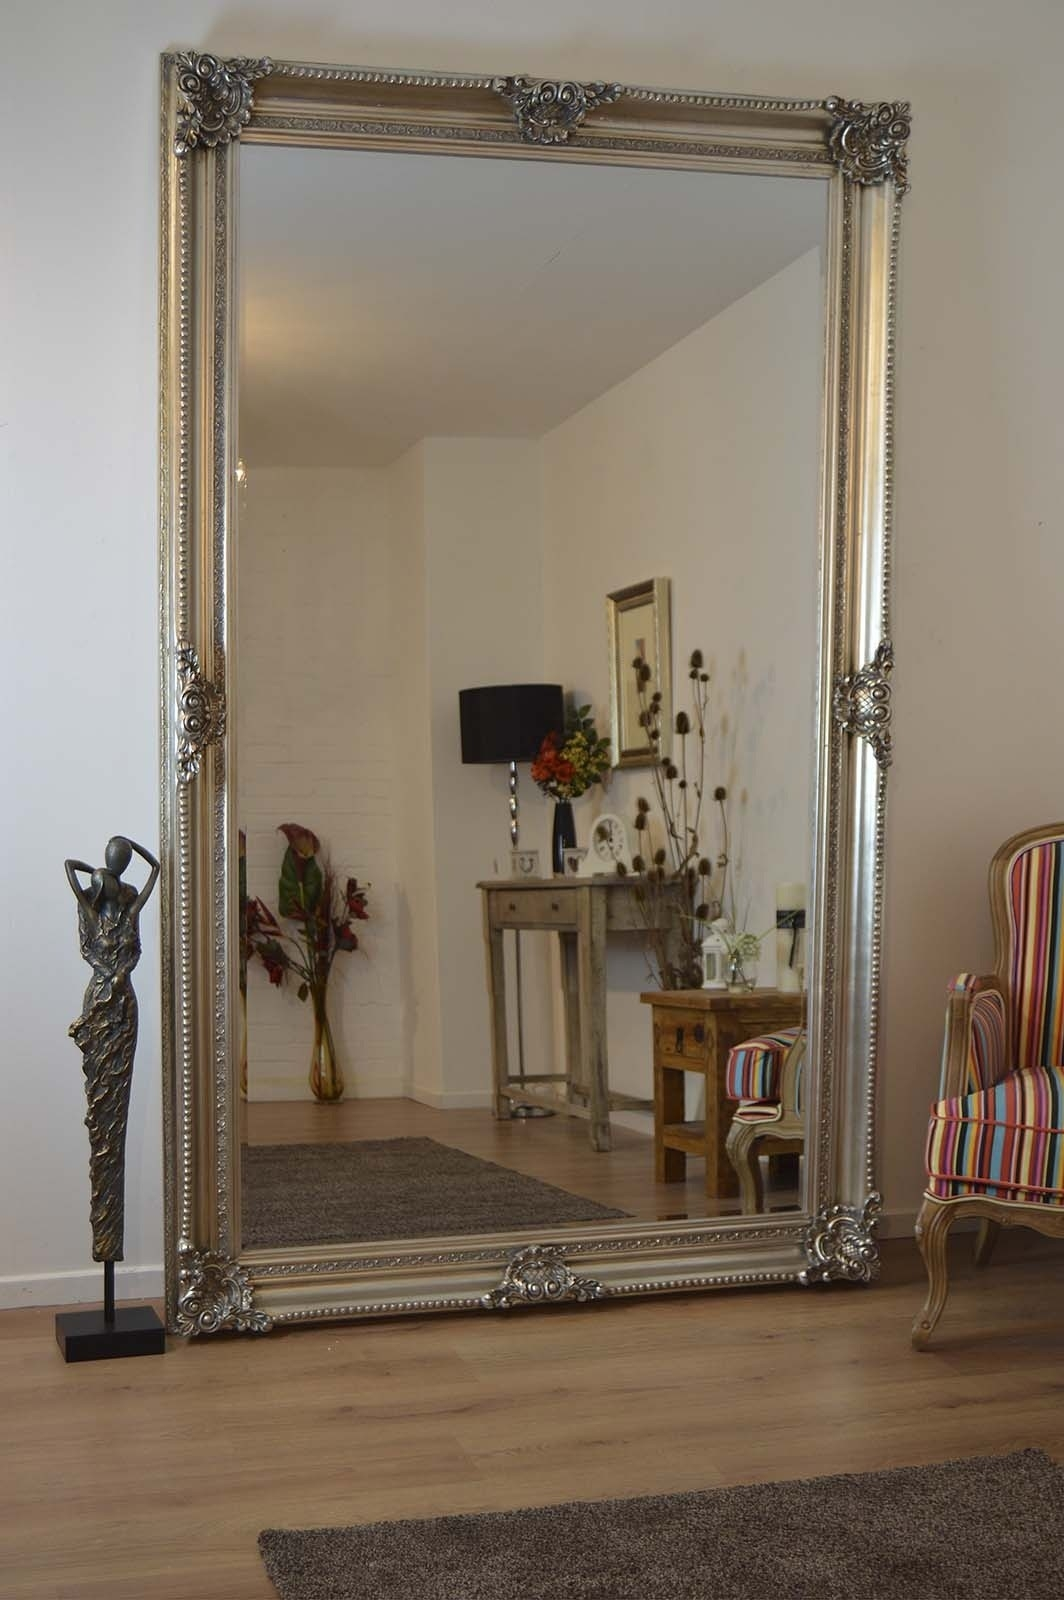 Classic Impression On Antique Wall Mirrors Vwho Within Massive Wall Mirrors (Image 8 of 15)